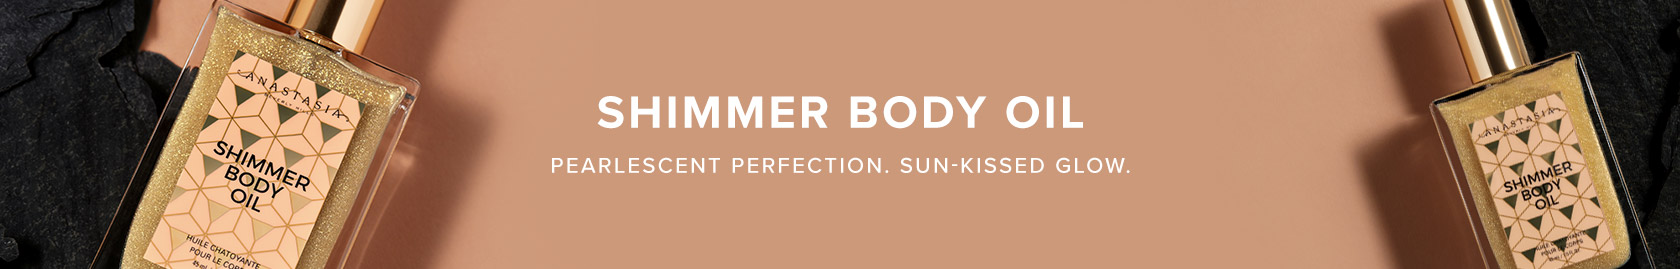 Shimmer Body Oil - Pearlescent Perfection